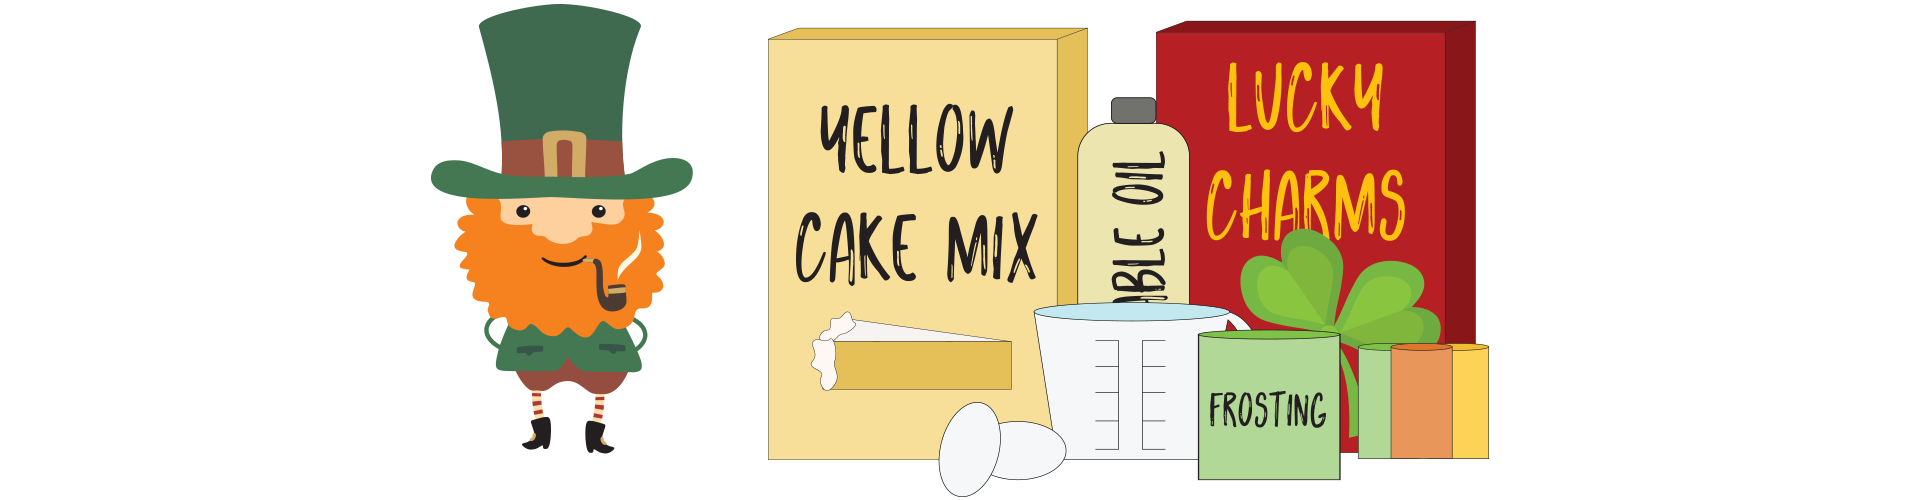 Gather together the following ingredients: Yellow cake mix, other additives listed on the cake mix box (typically water, oil, and eggs), 2 cups Lucky Charms™ marshmallows, rainbow-colored sprinkles, and 1 container of green frosting (or white with green food coloring added)